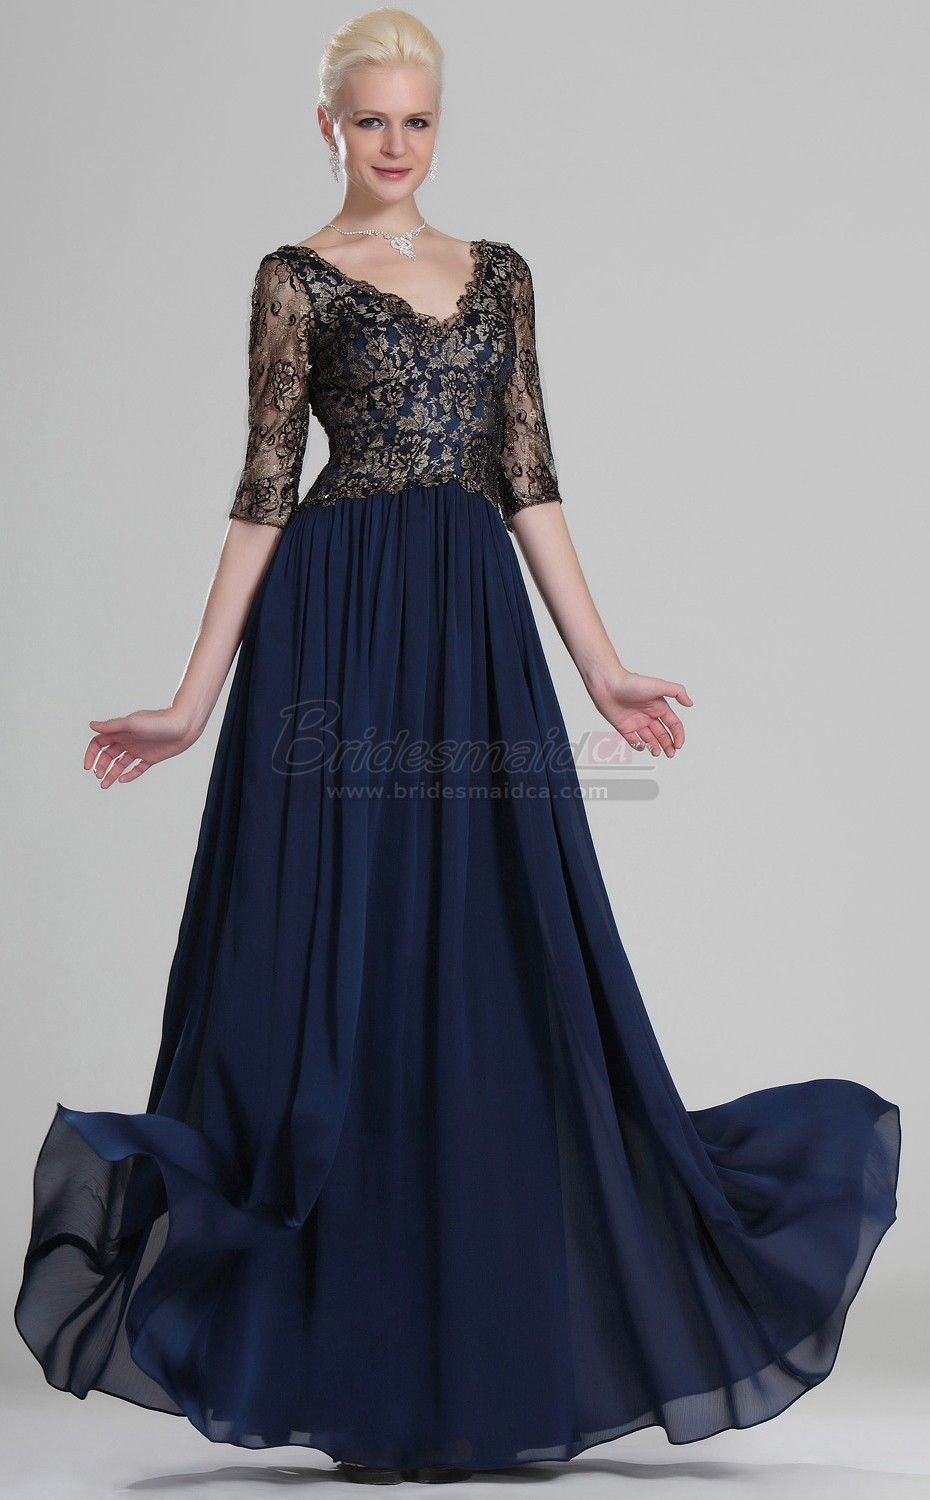 Long v neck lace ink blue vintage bridesmaid dress with half sleeve